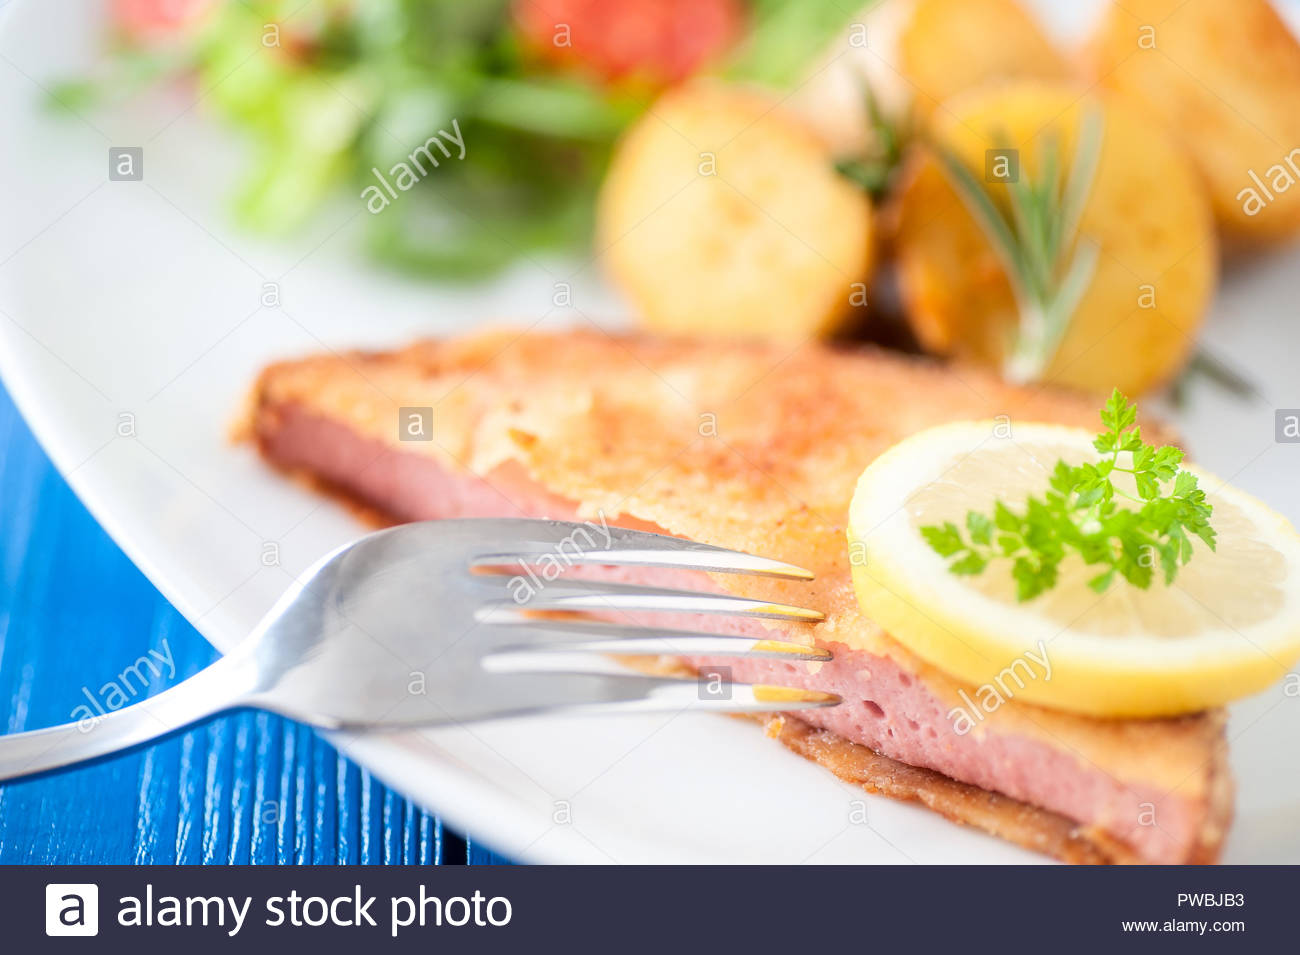 breaded leberkäse with roasted potatoes and sald on plate typical